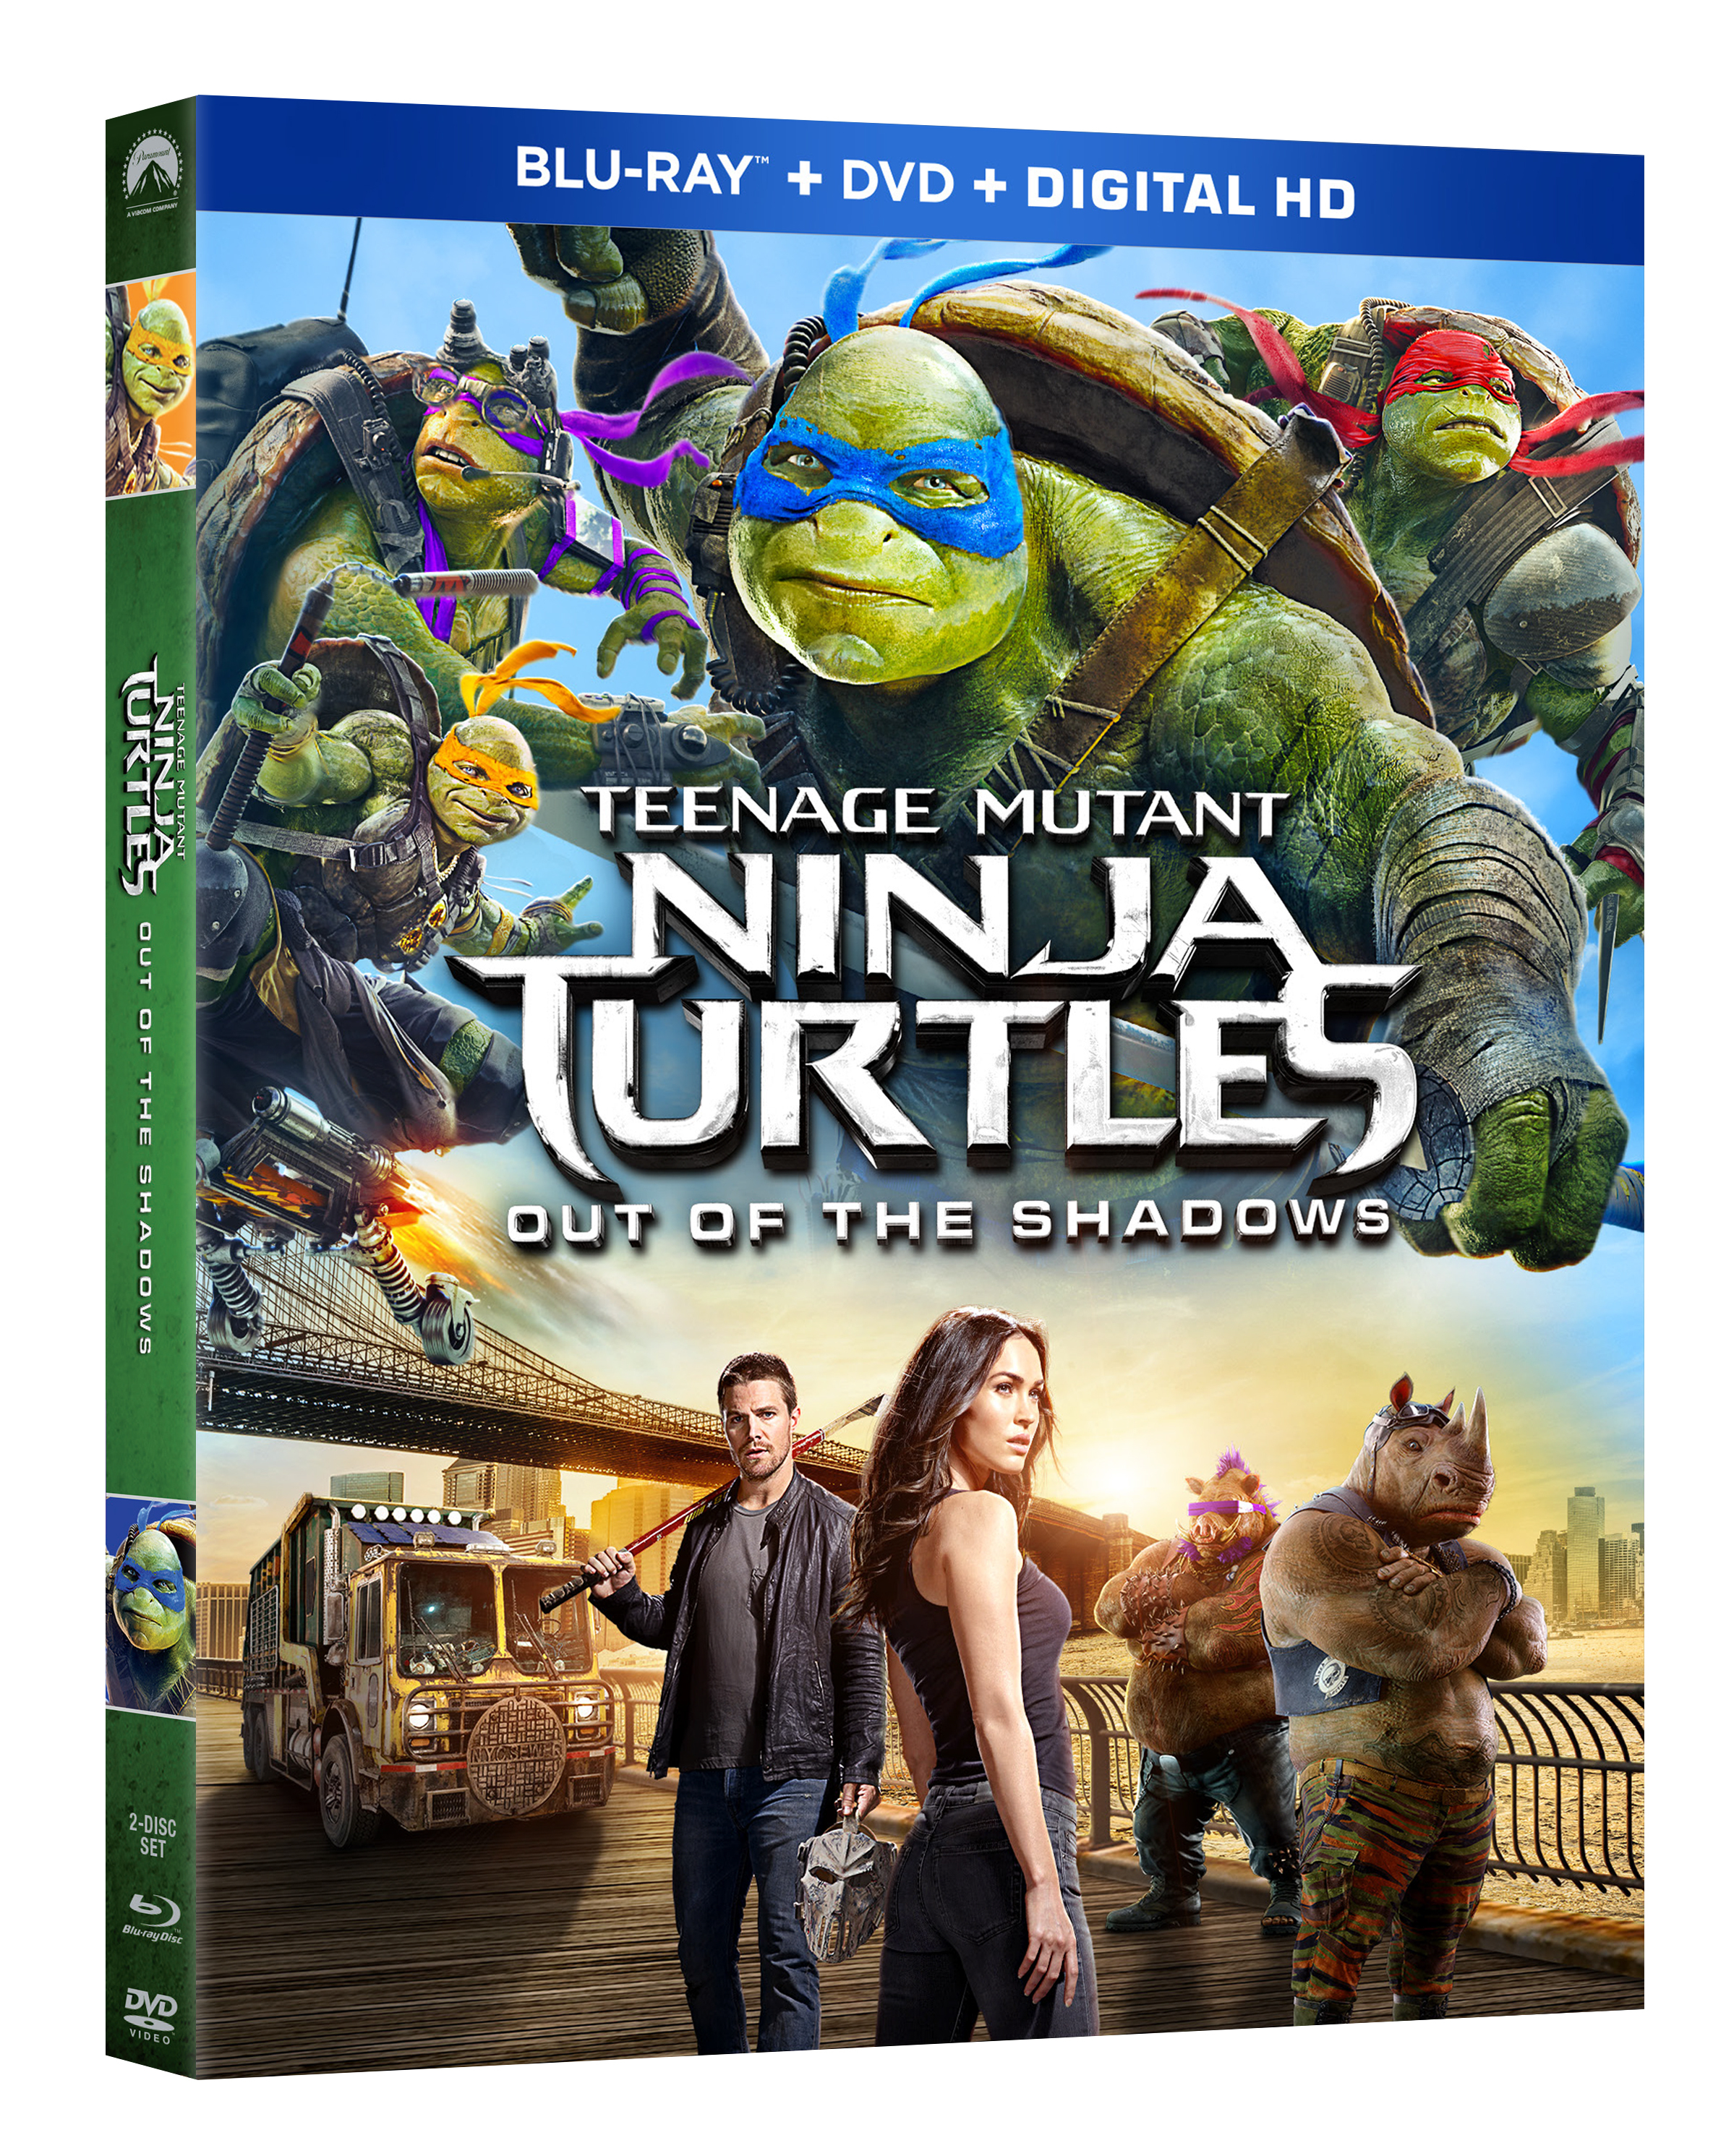 The Turtles Rule Again In The Best Family Action Movie Of The Year